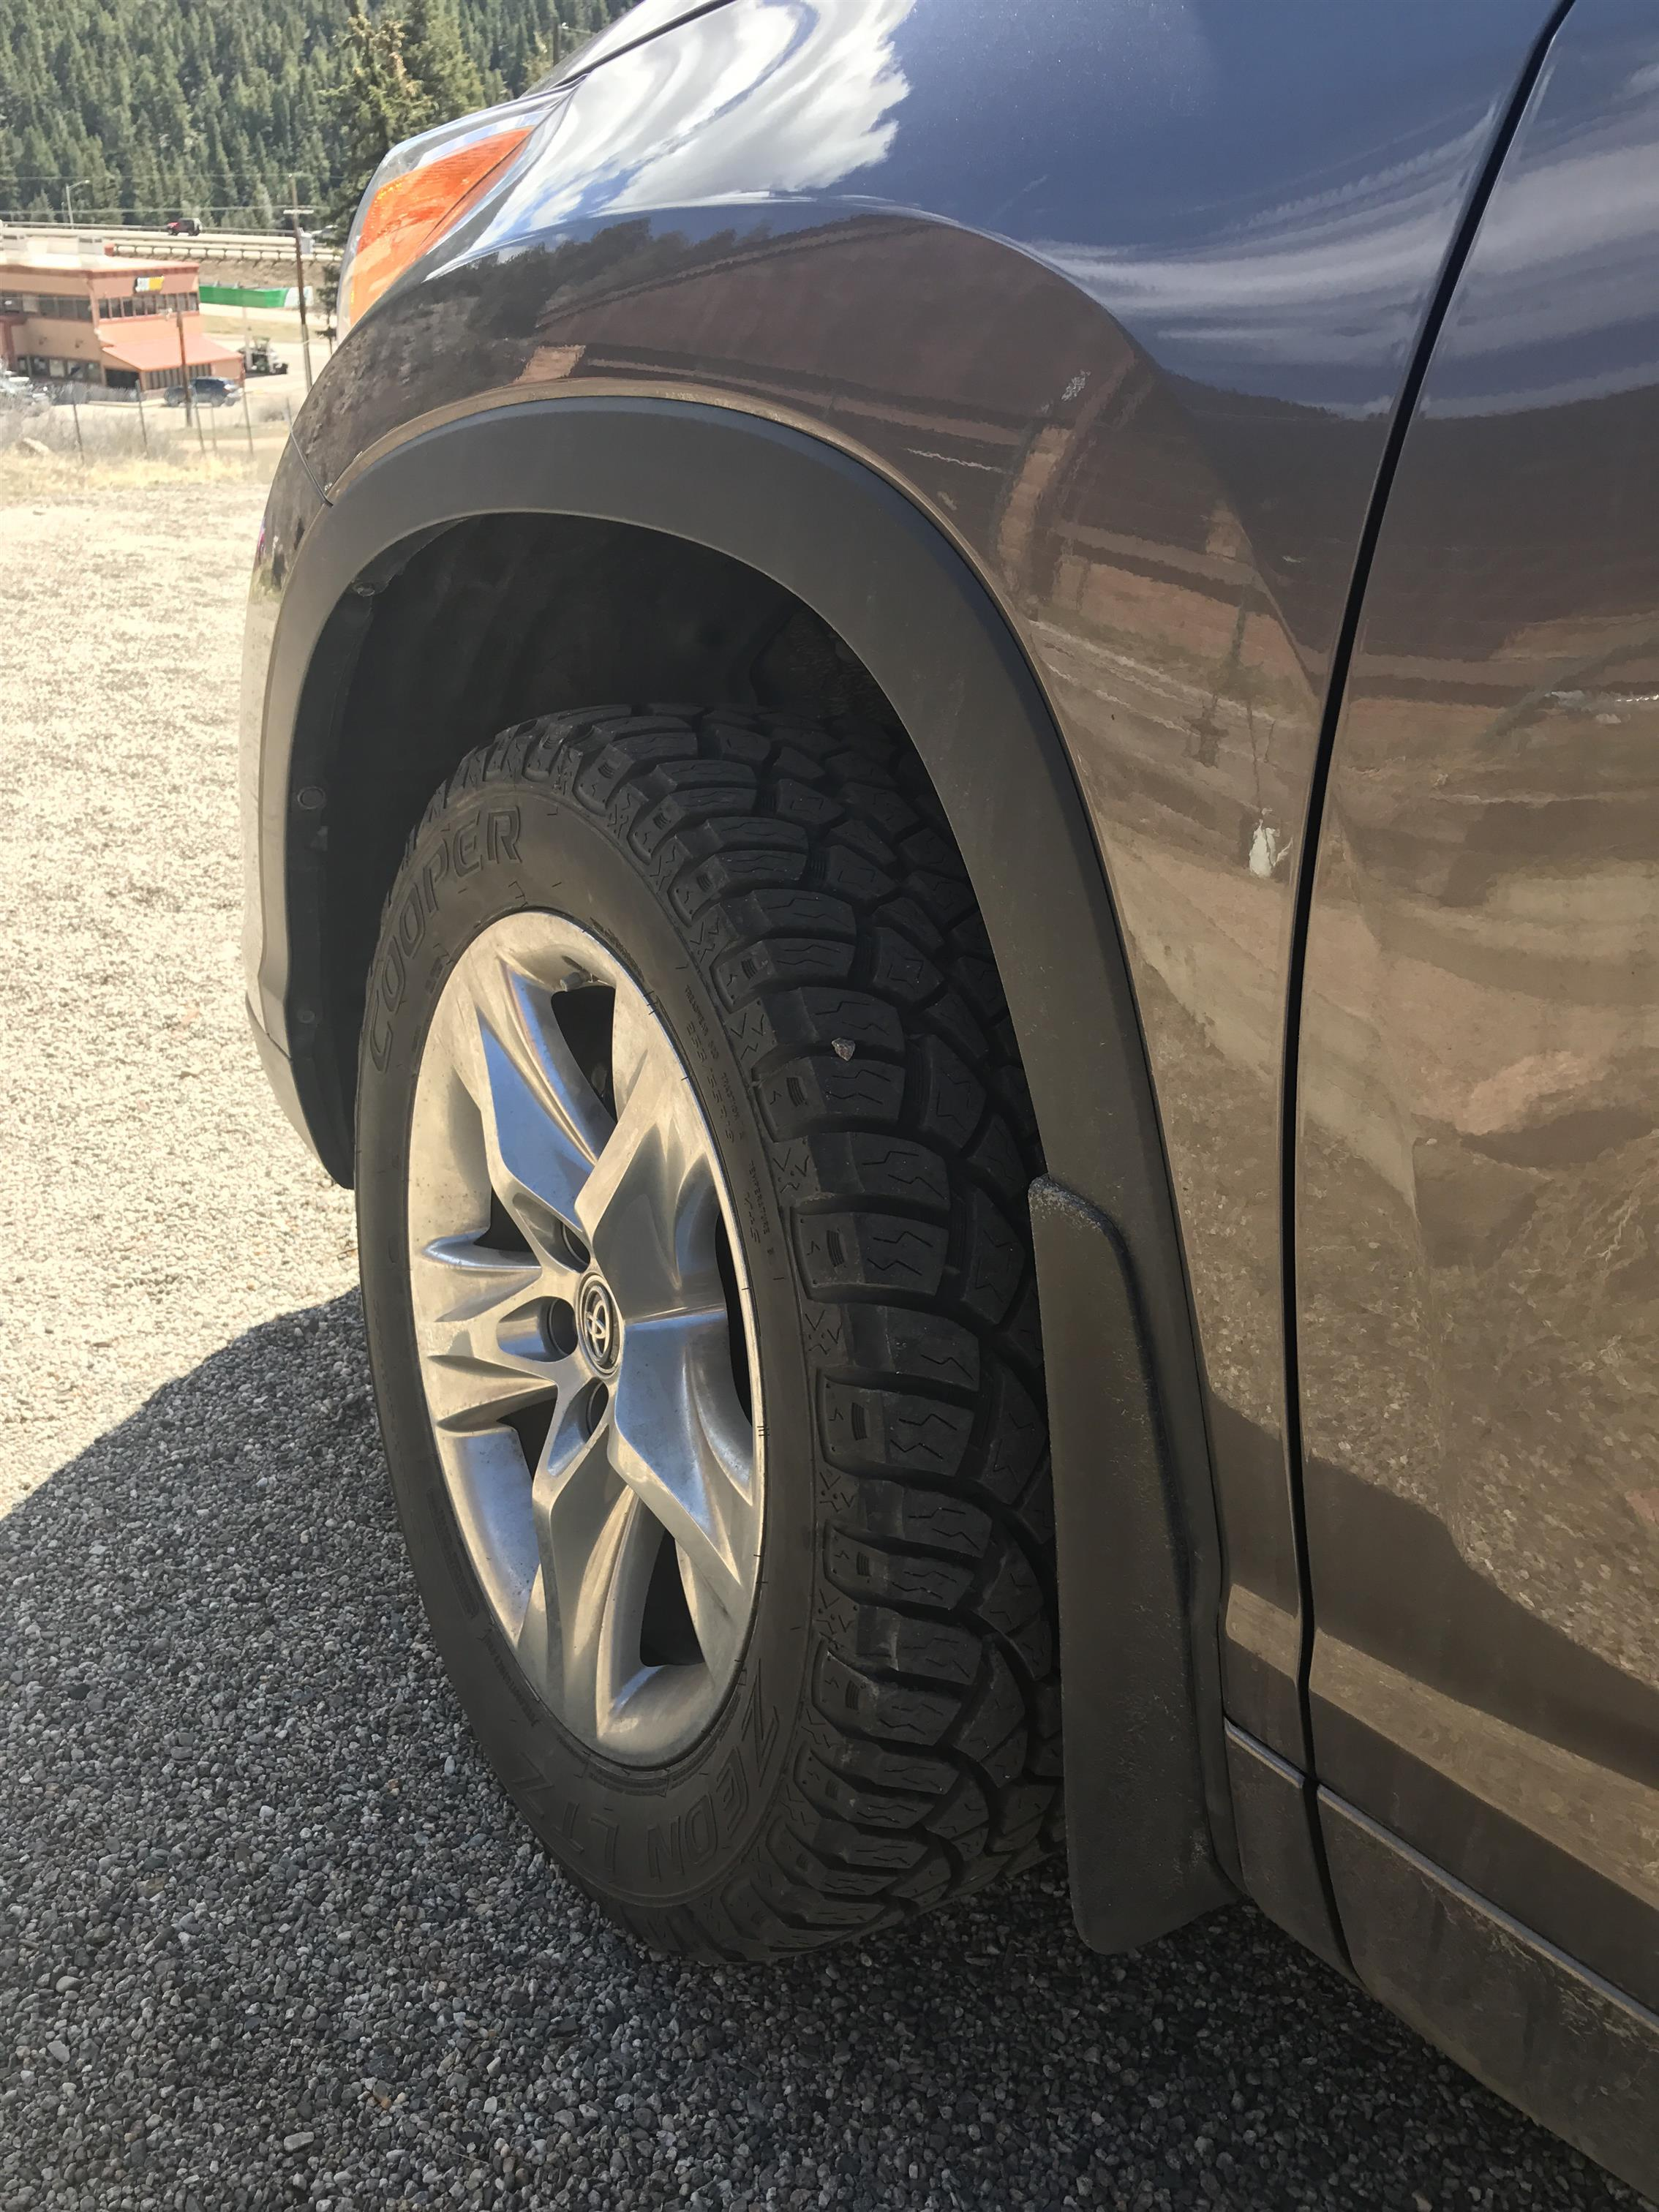 All Weather Tire >> 2016 Highlander Tire Option - Toyota Nation Forum : Toyota Car and Truck Forums